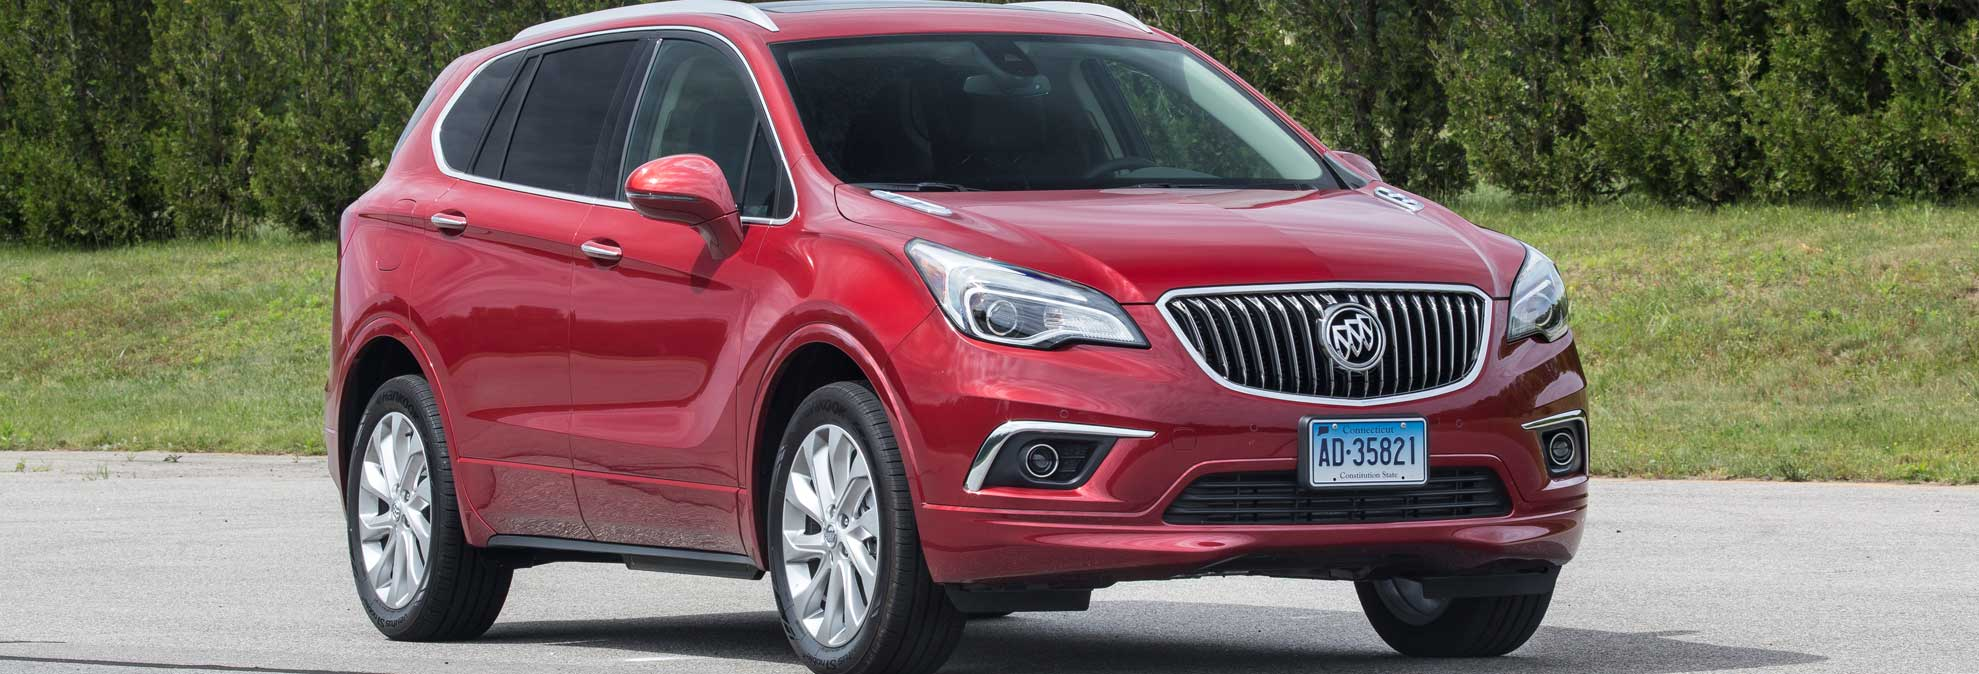 new 2016 buick envision suv proves disappointing. Black Bedroom Furniture Sets. Home Design Ideas